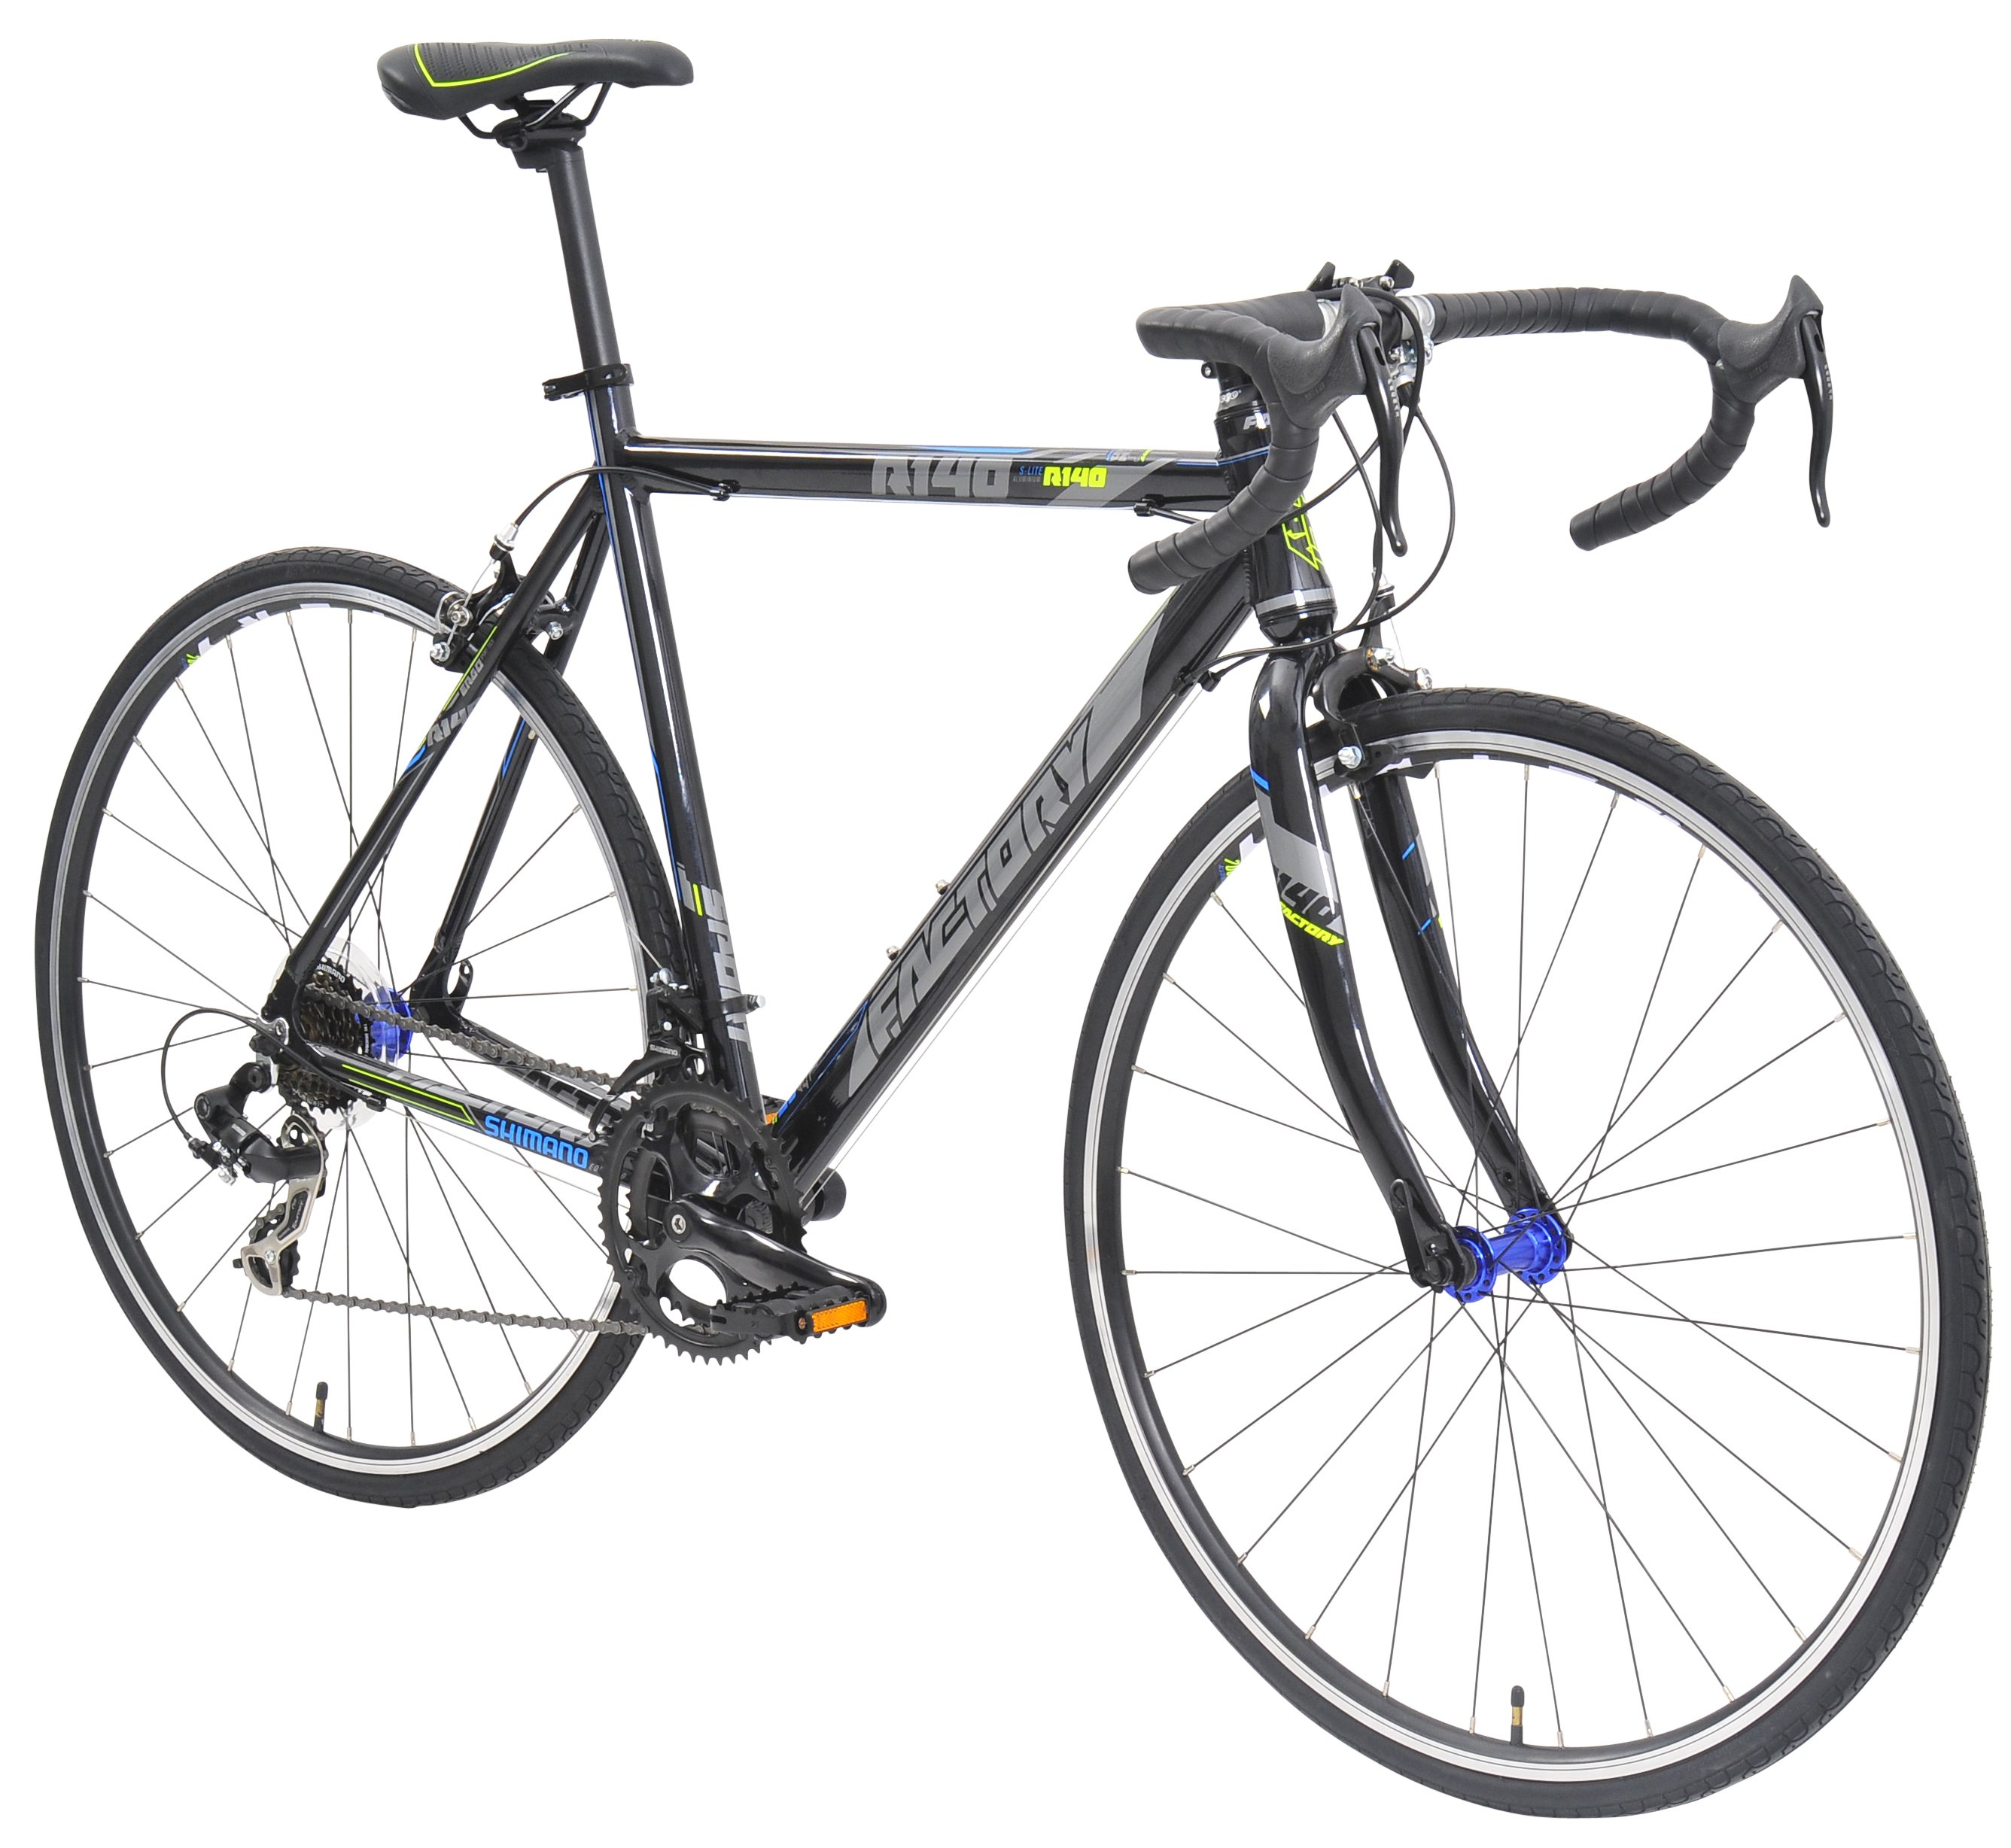 Factory Bicycles R140 14 Speed Road Bike Black Yellow